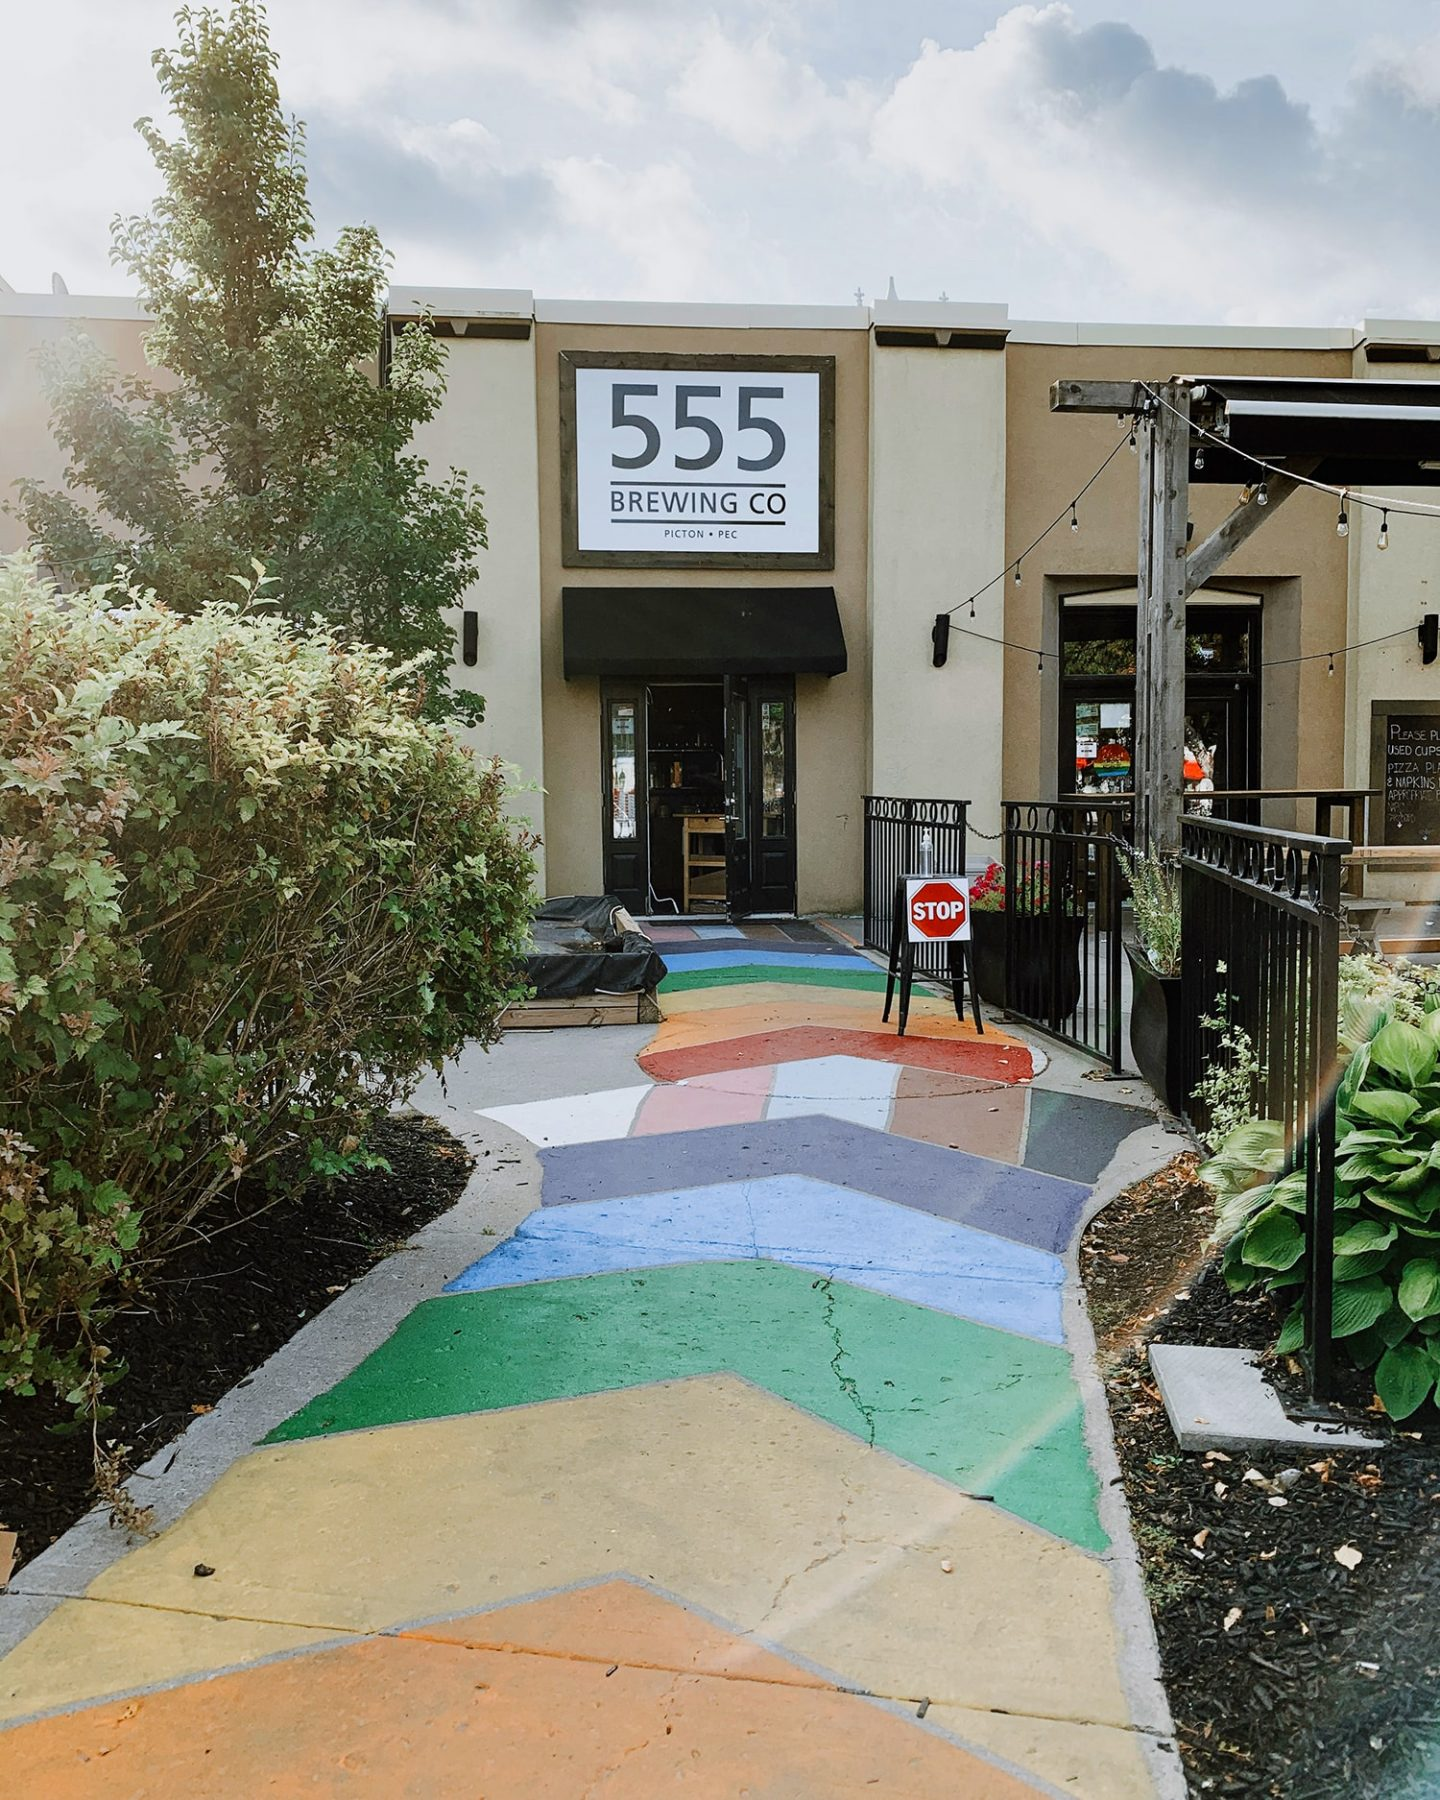 555 Brewing Co in Picton, Prince Edward County